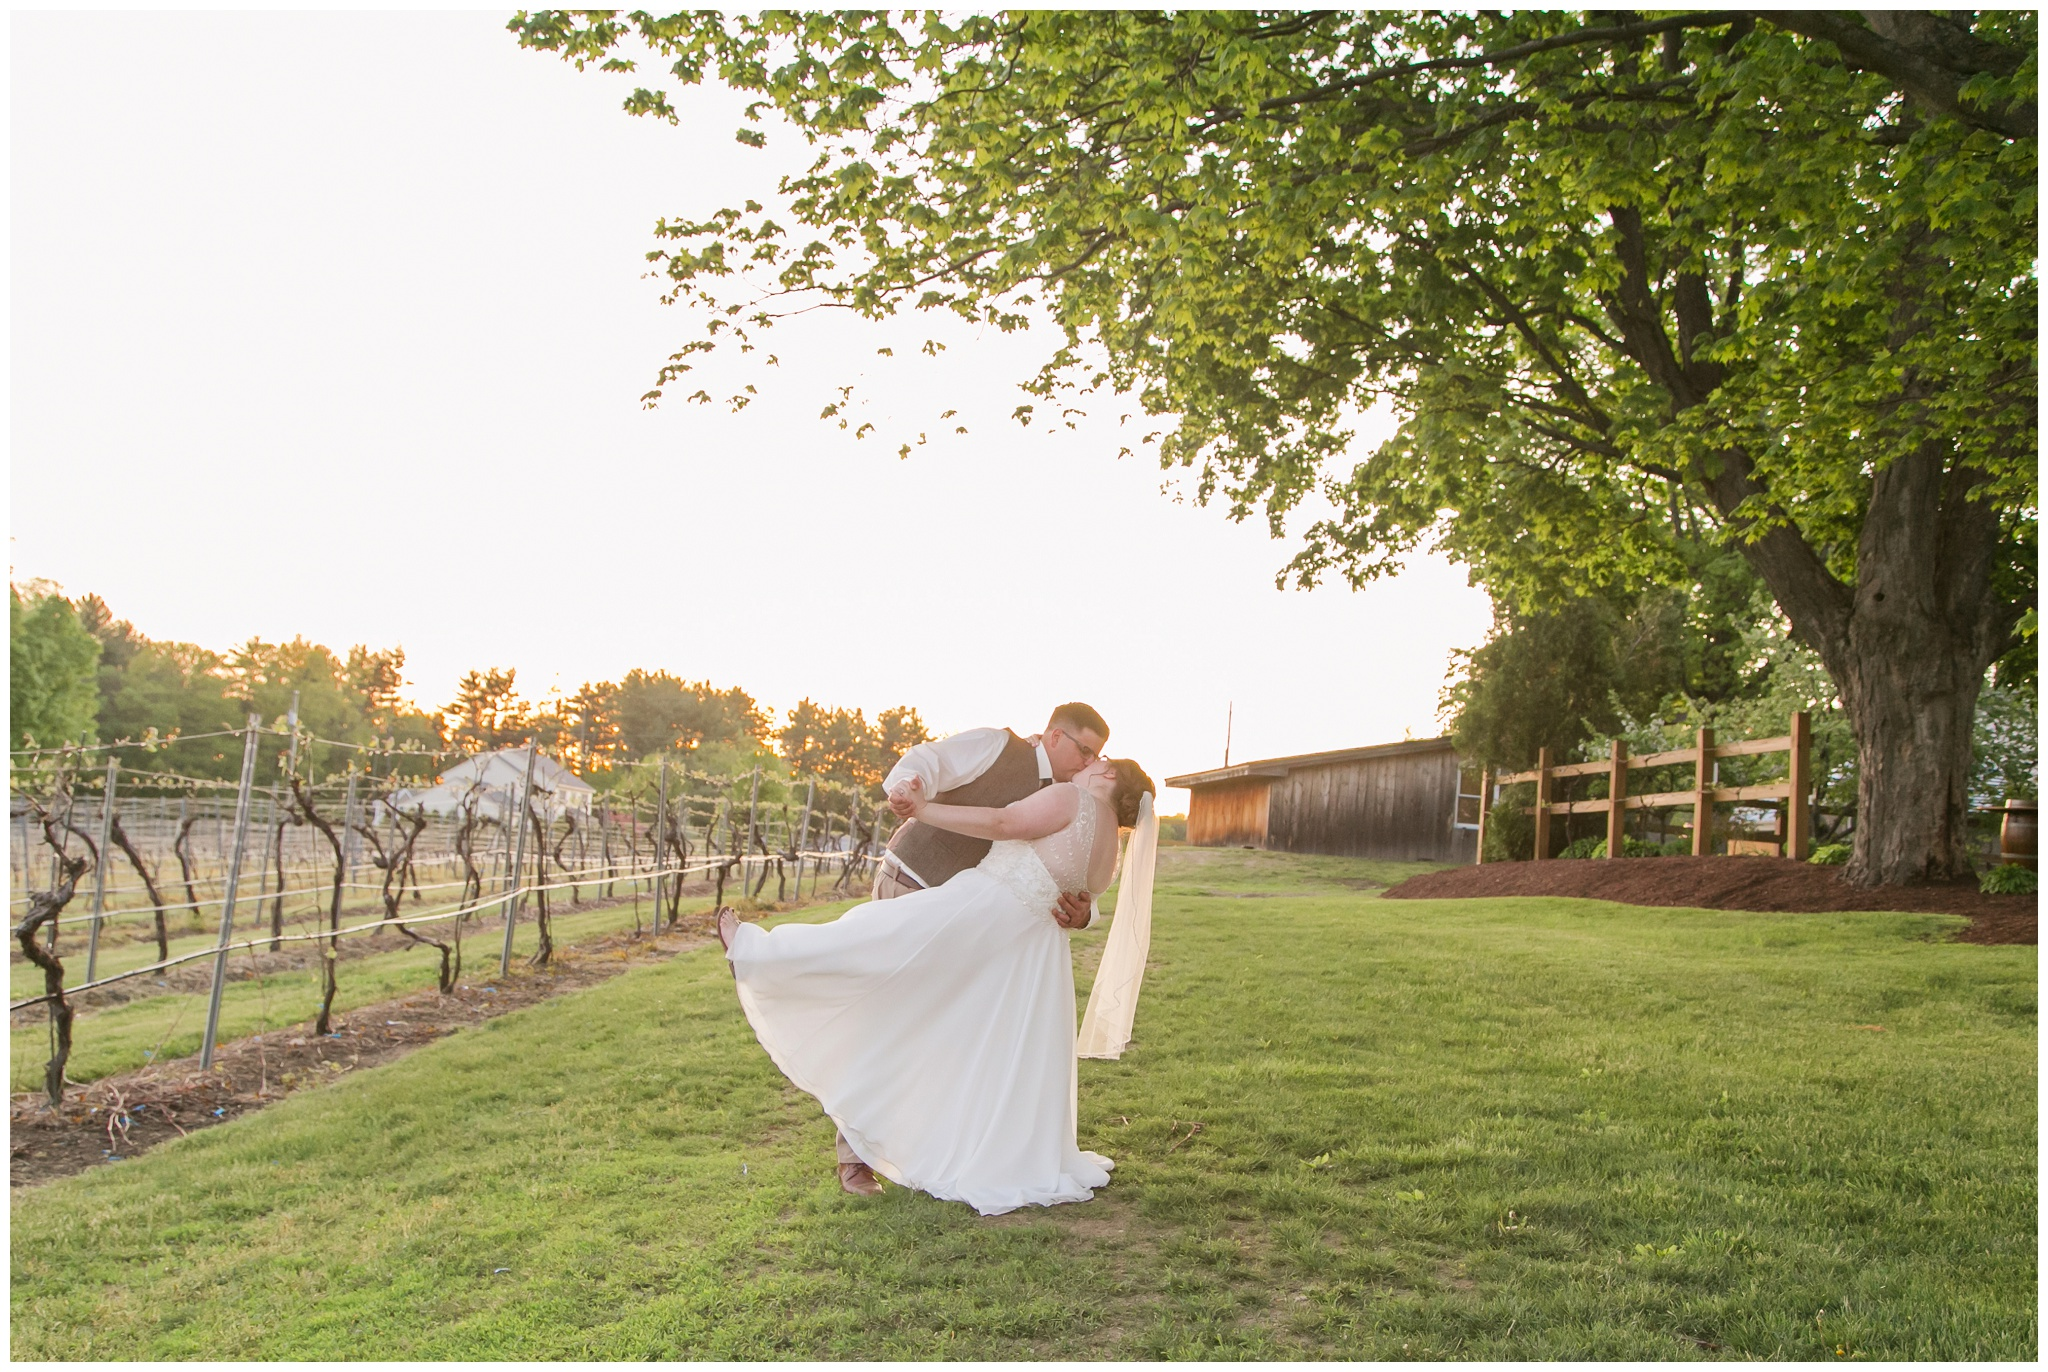 Amy-Brown-Photography-Seacoast-NH-New-Hampshire-Outdoor-Wedding-Flag Hill-Distillery-And-Winery_0730.jpg